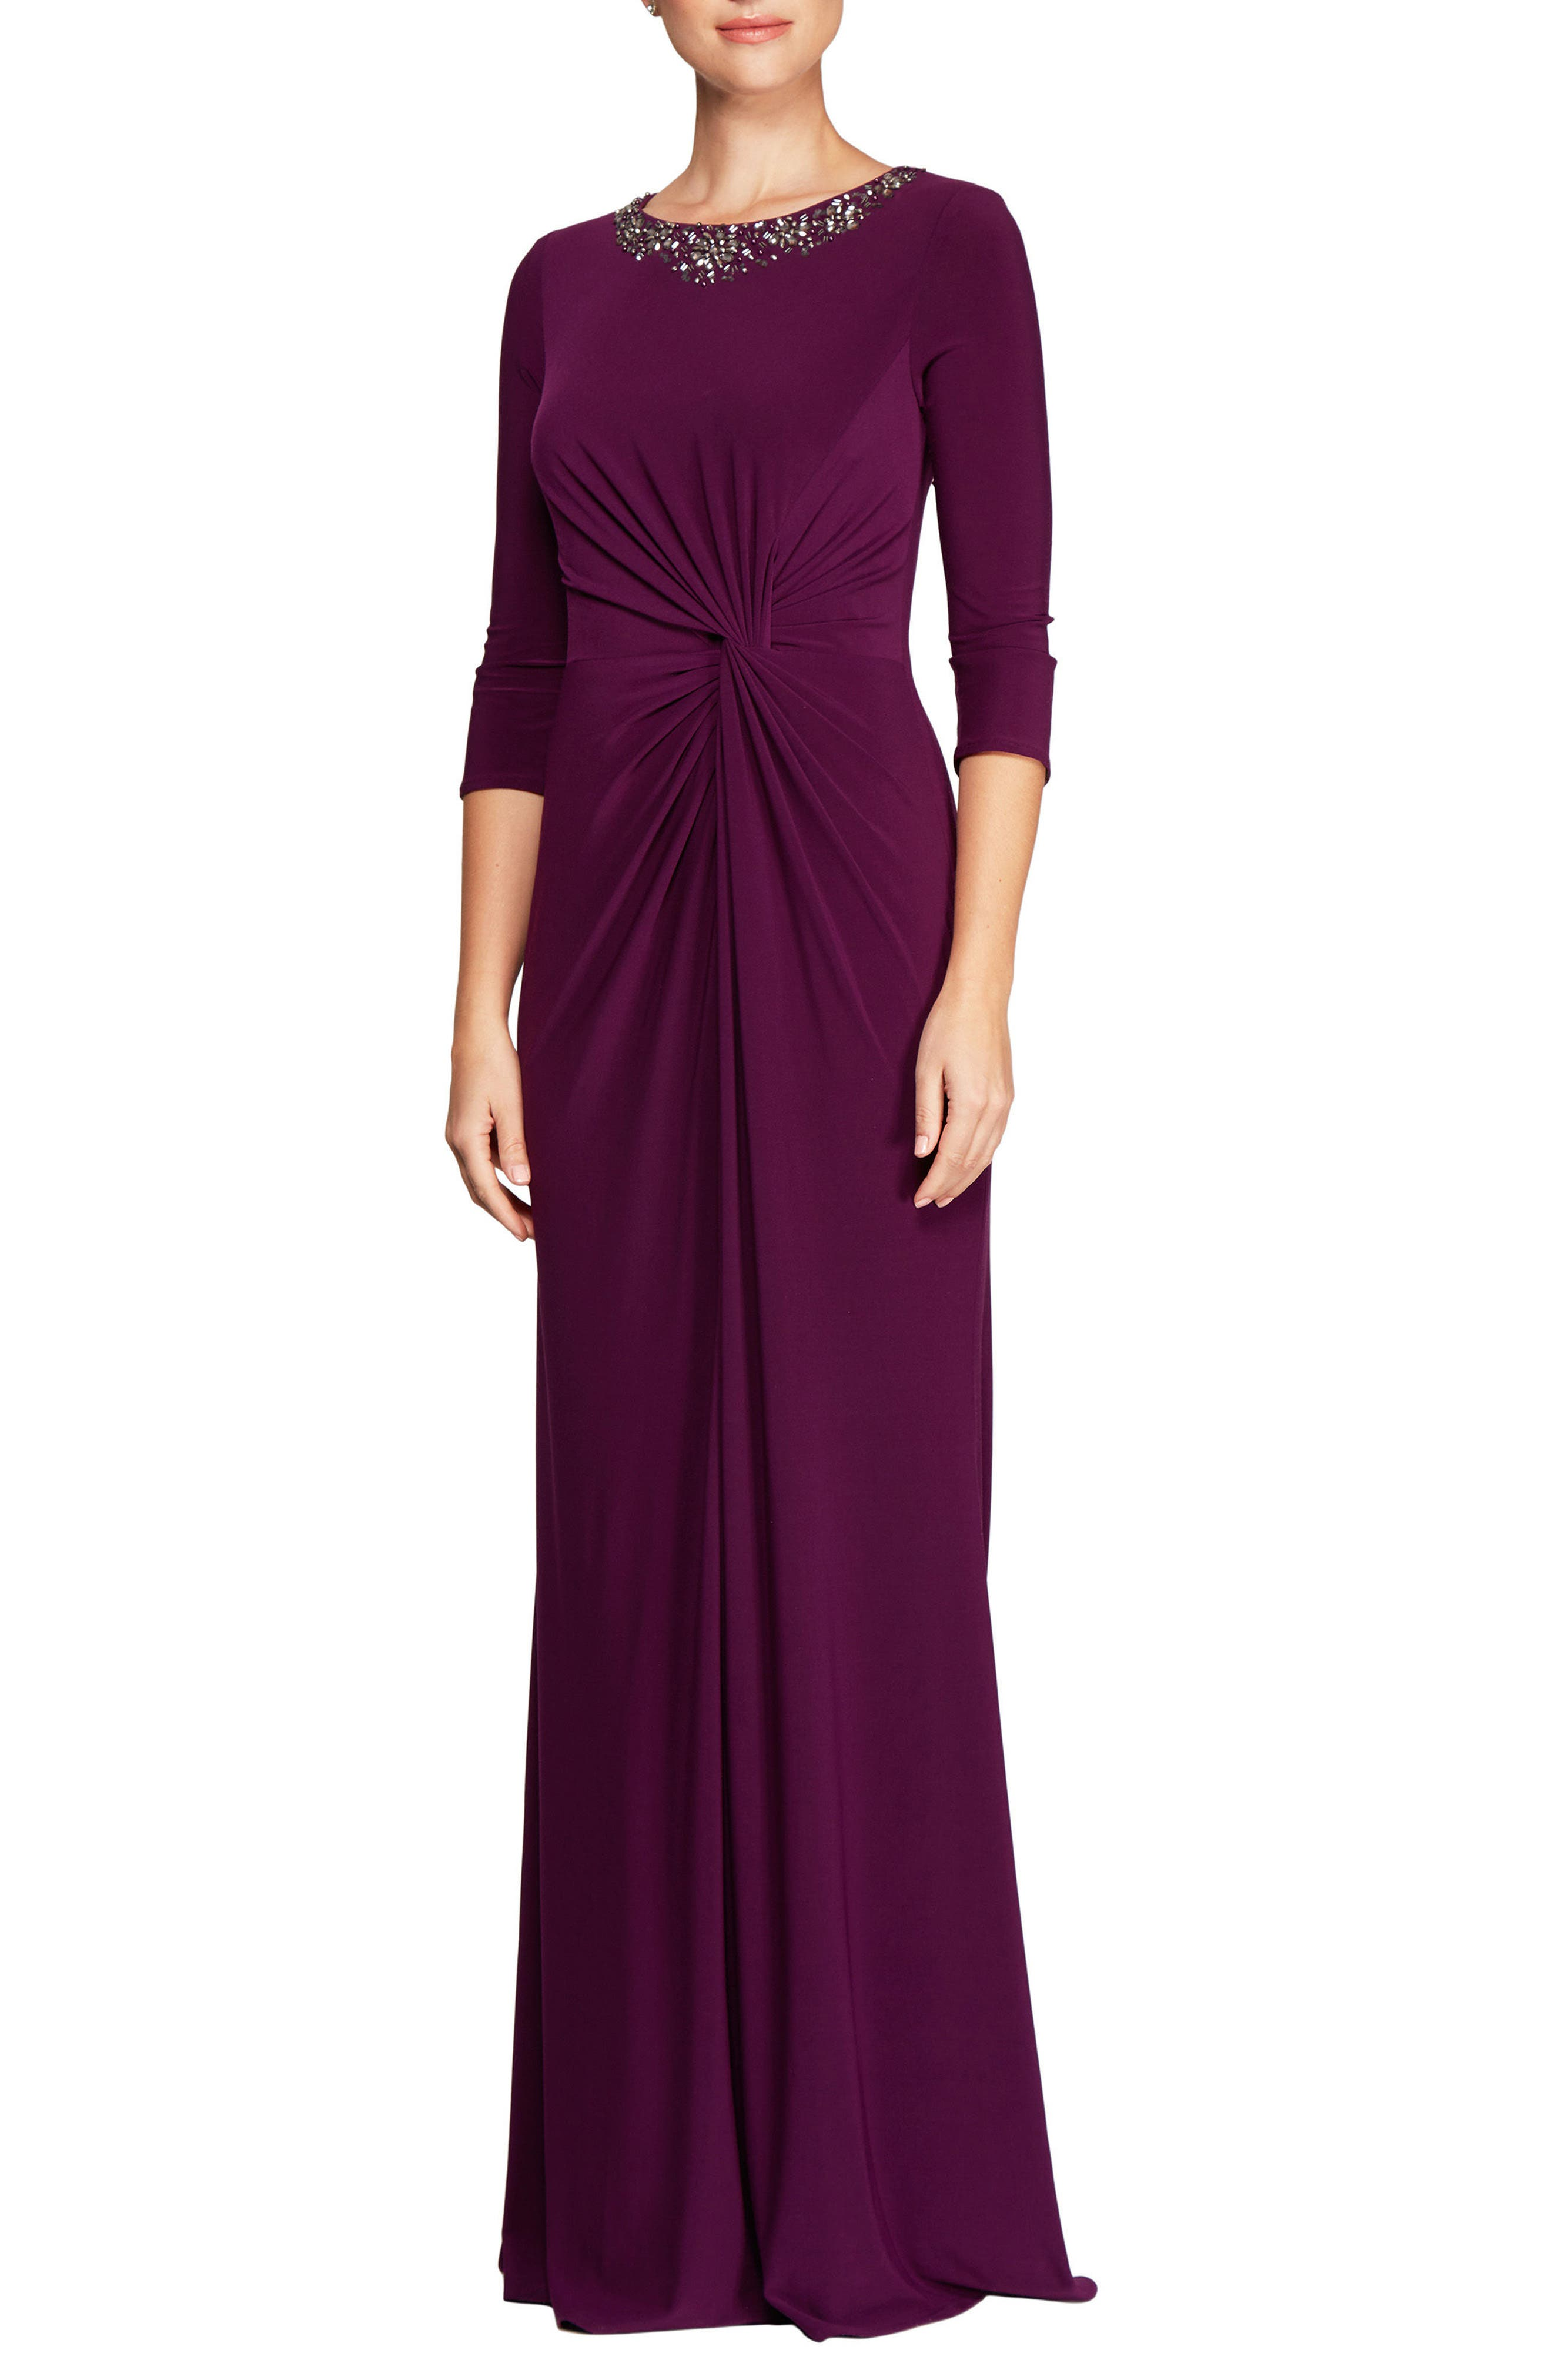 Knotted A-Line Gown,                         Main,                         color, 511